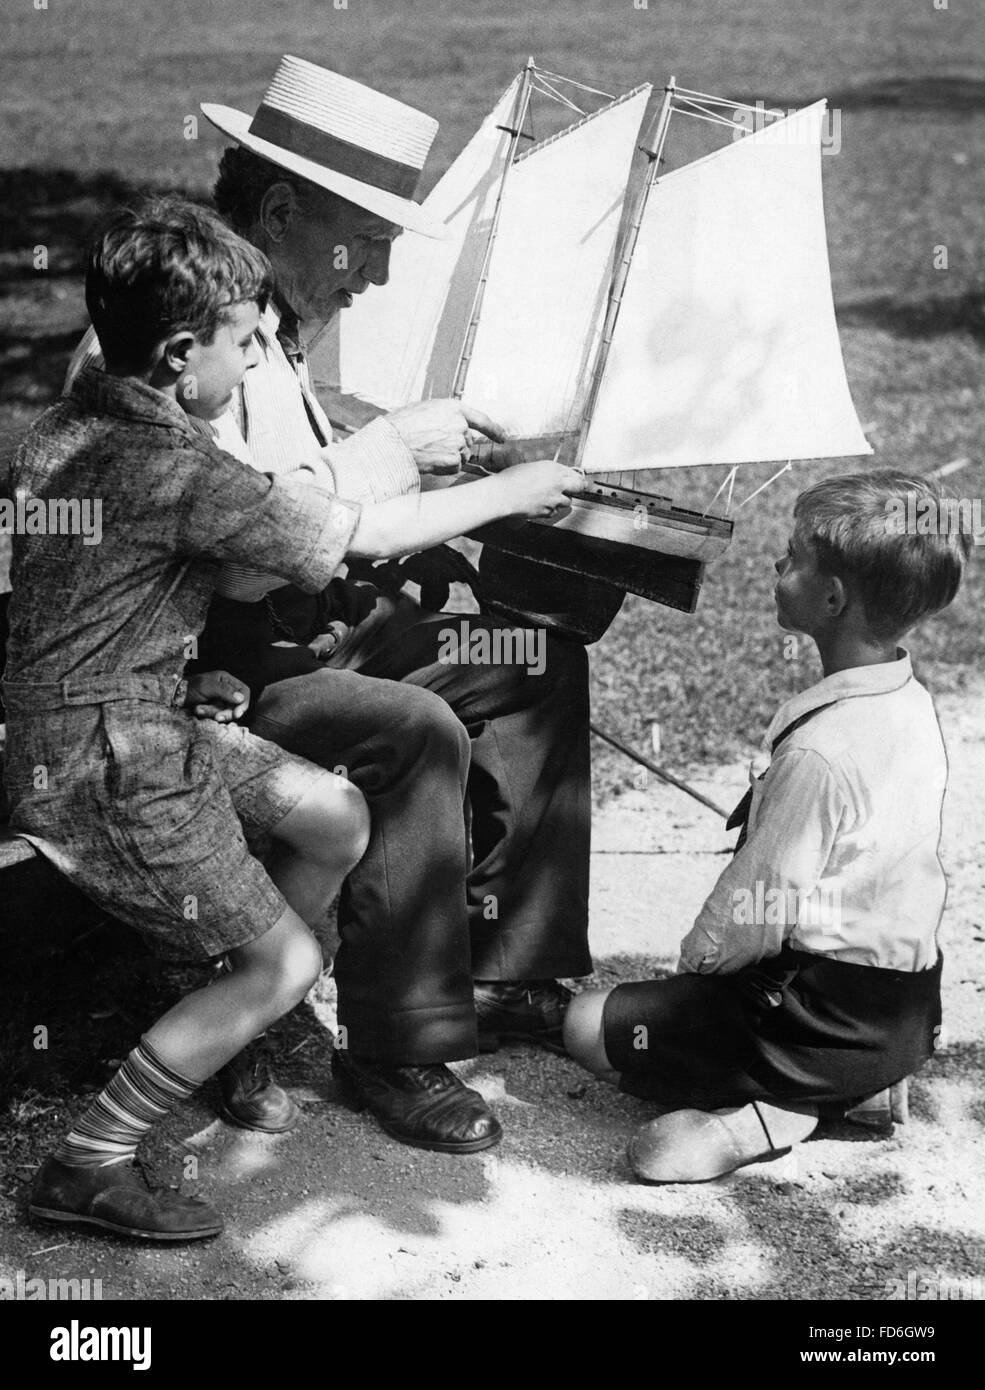 Man and boys with a model of a ship, 1930s - Stock Image